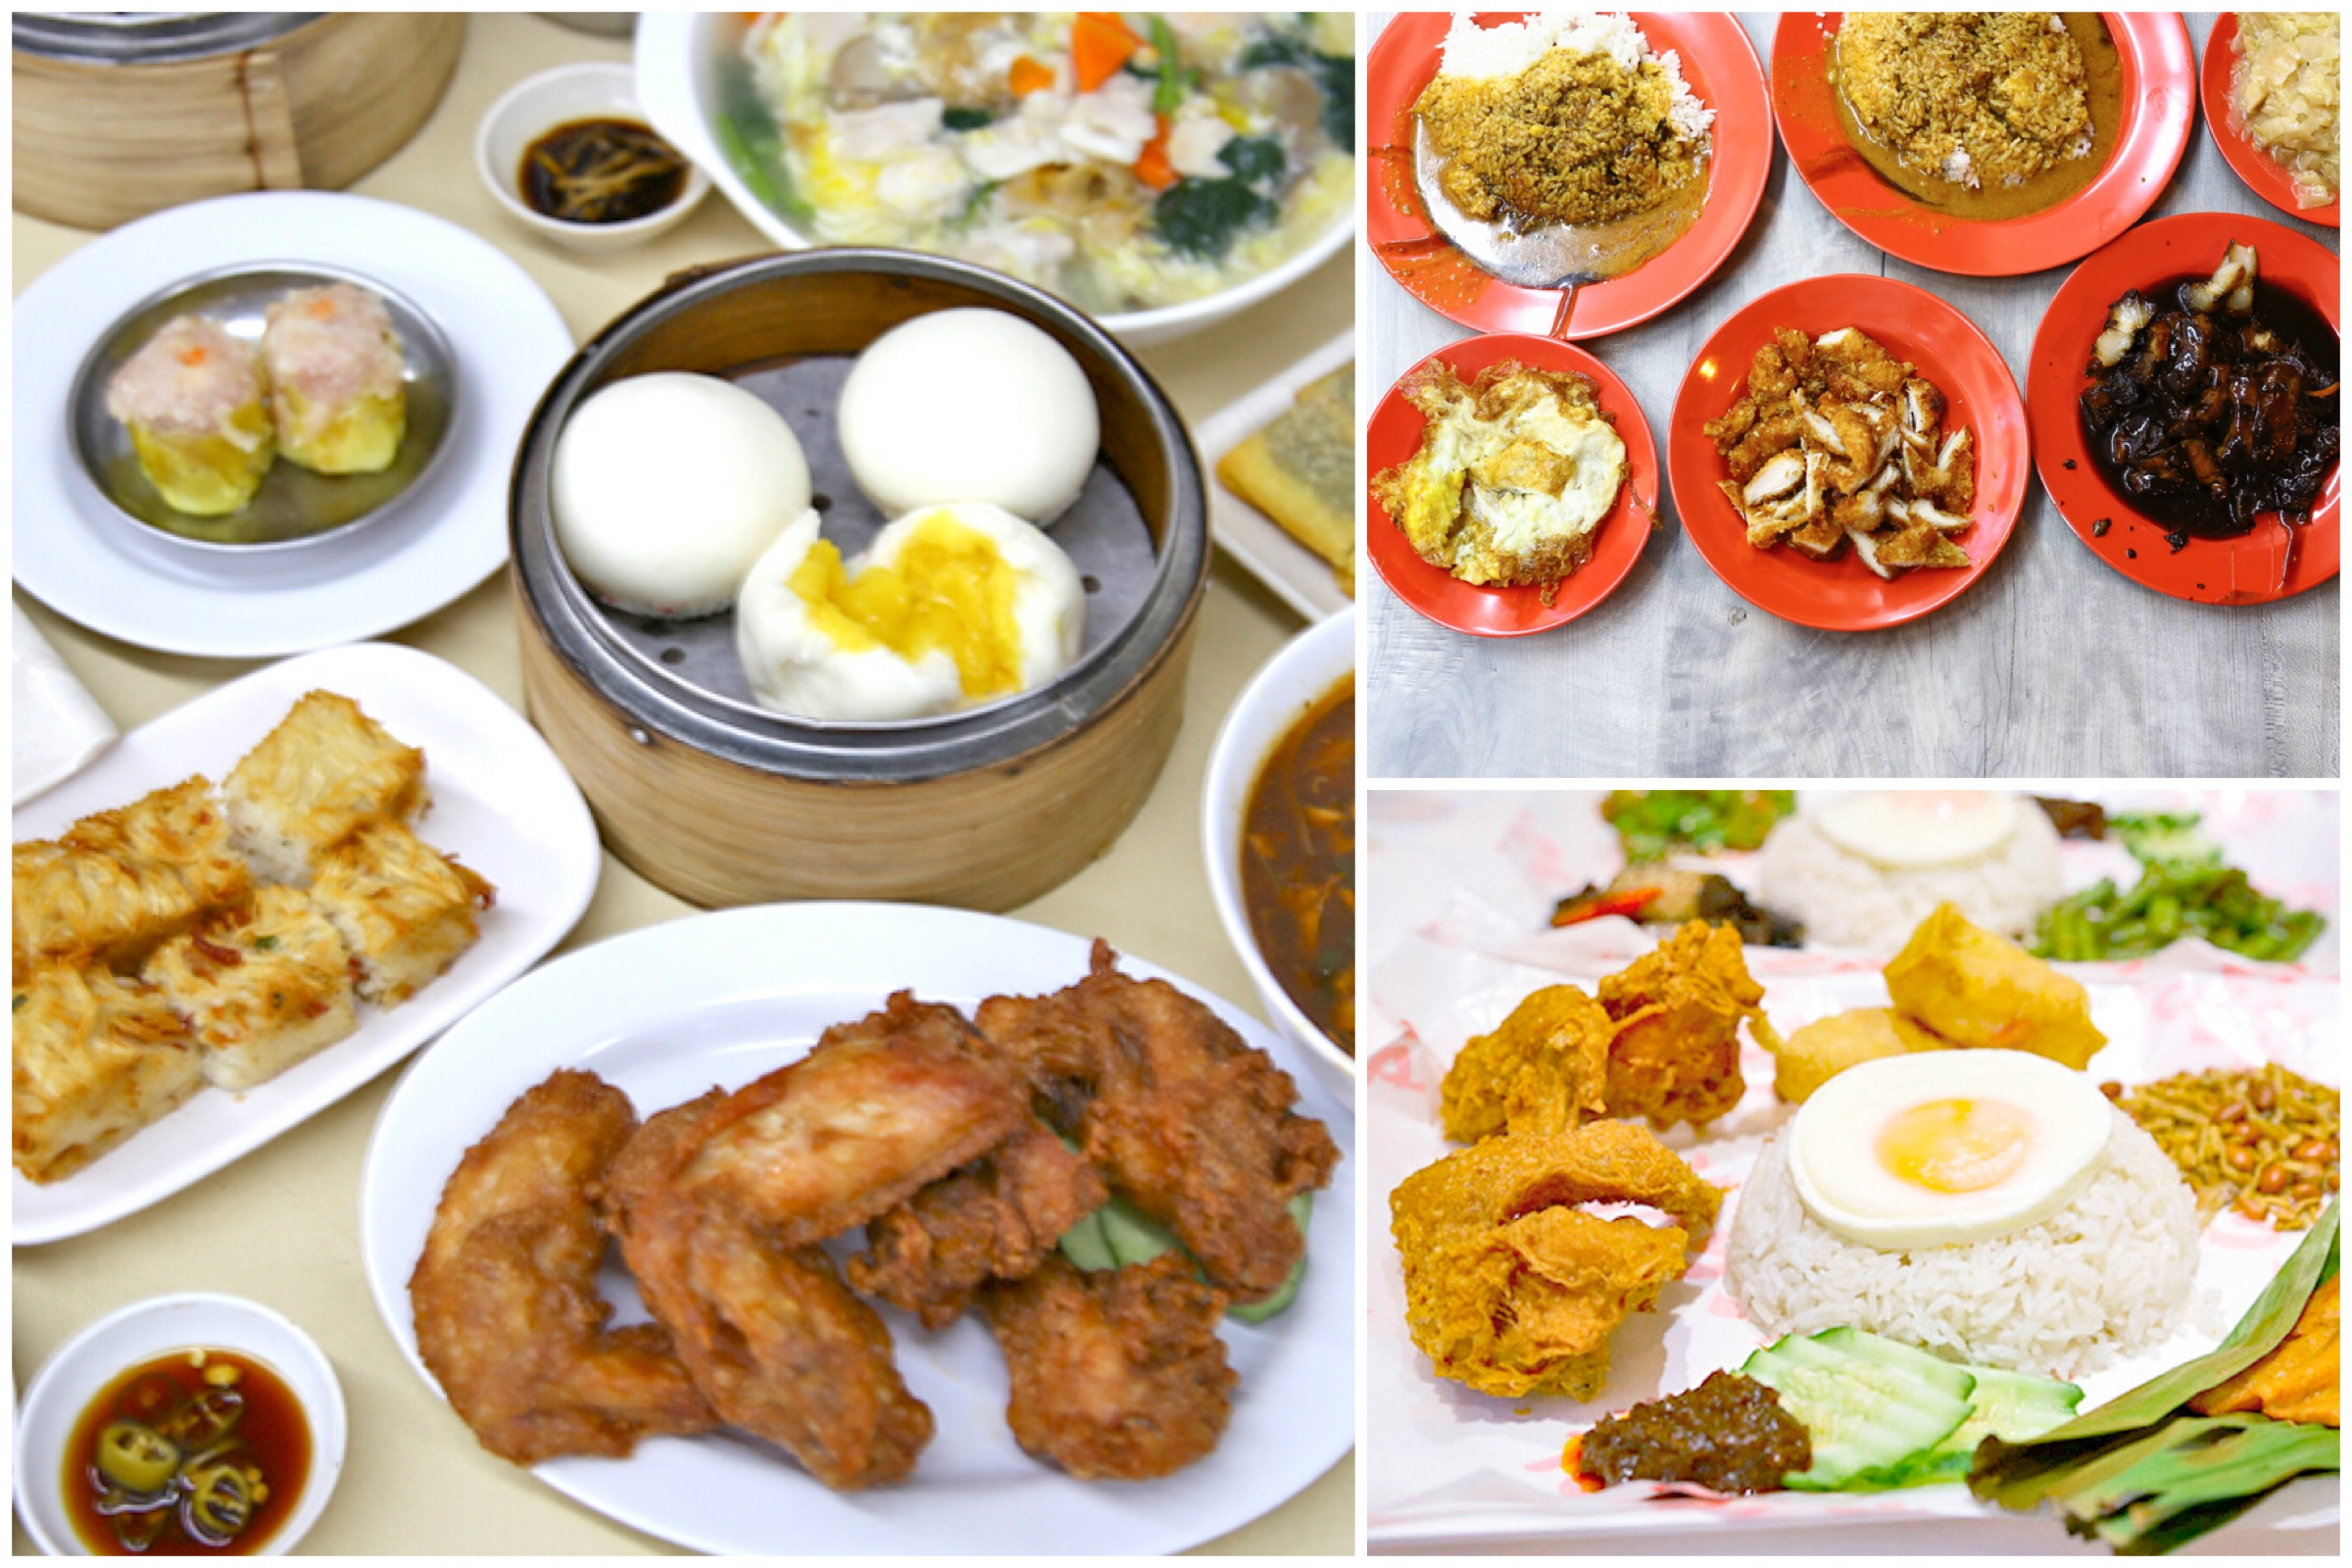 10 Favourite Supper Places In Singapore - From Spize, Swee Choon To Scissors Cut Curry Rice